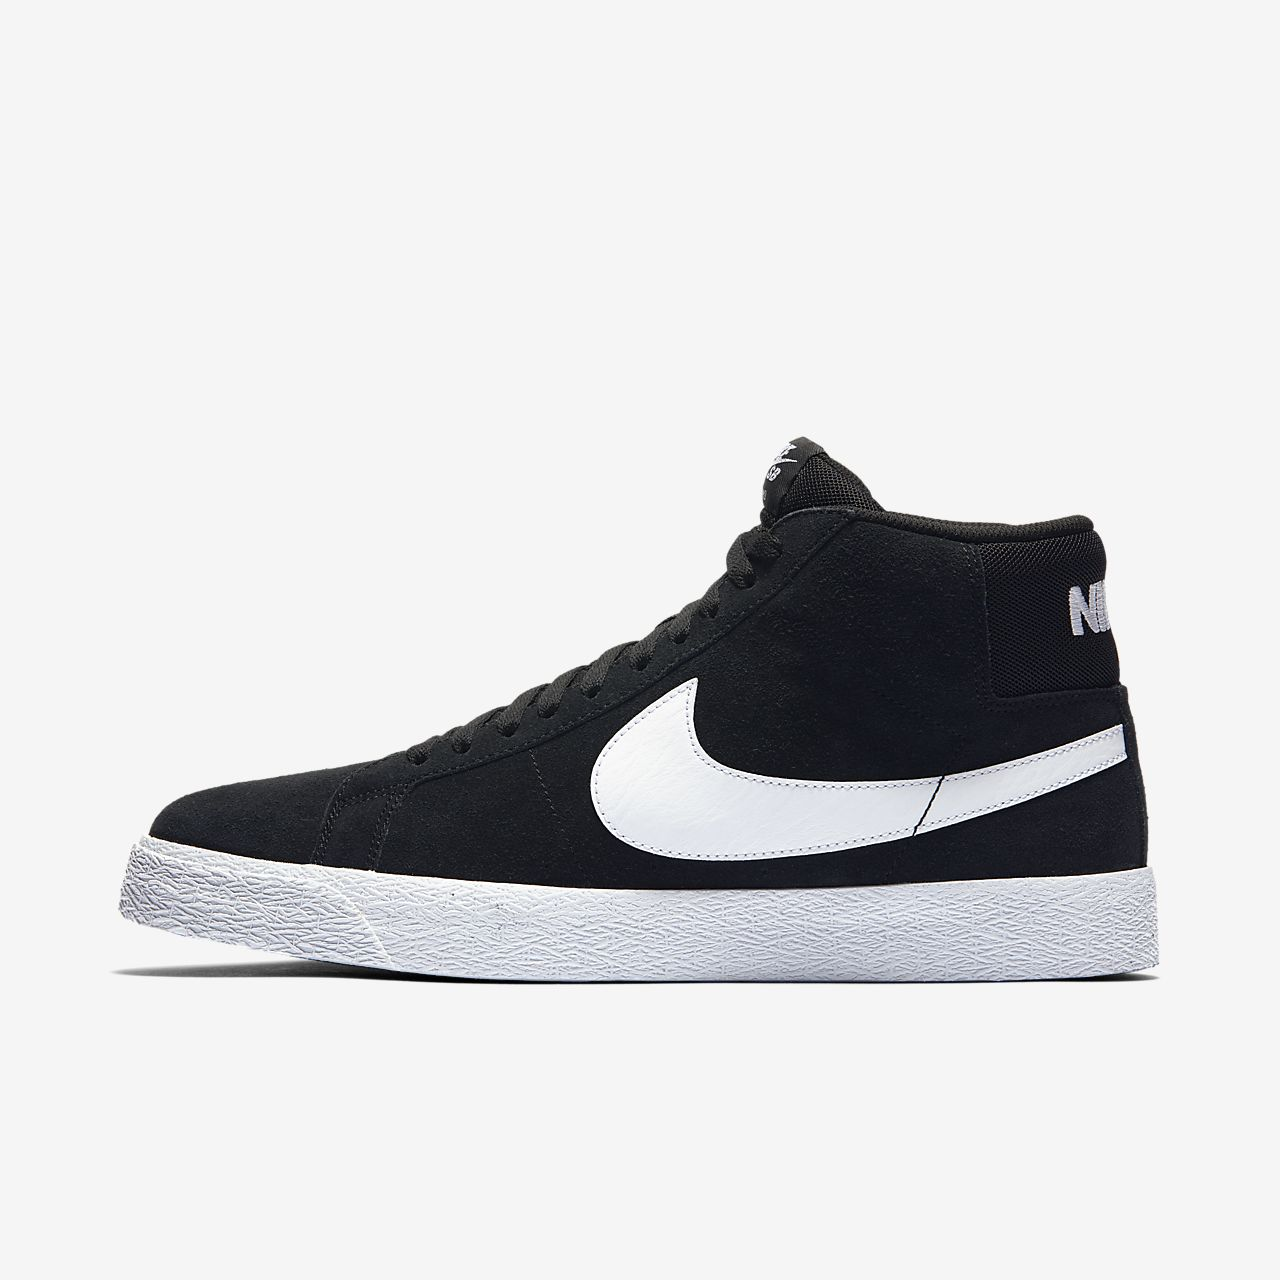 best website c202b 39468 Low Resolution Nike SB Zoom Blazer Mid Skate Shoe Nike SB Zoom Blazer Mid  Skate Shoe